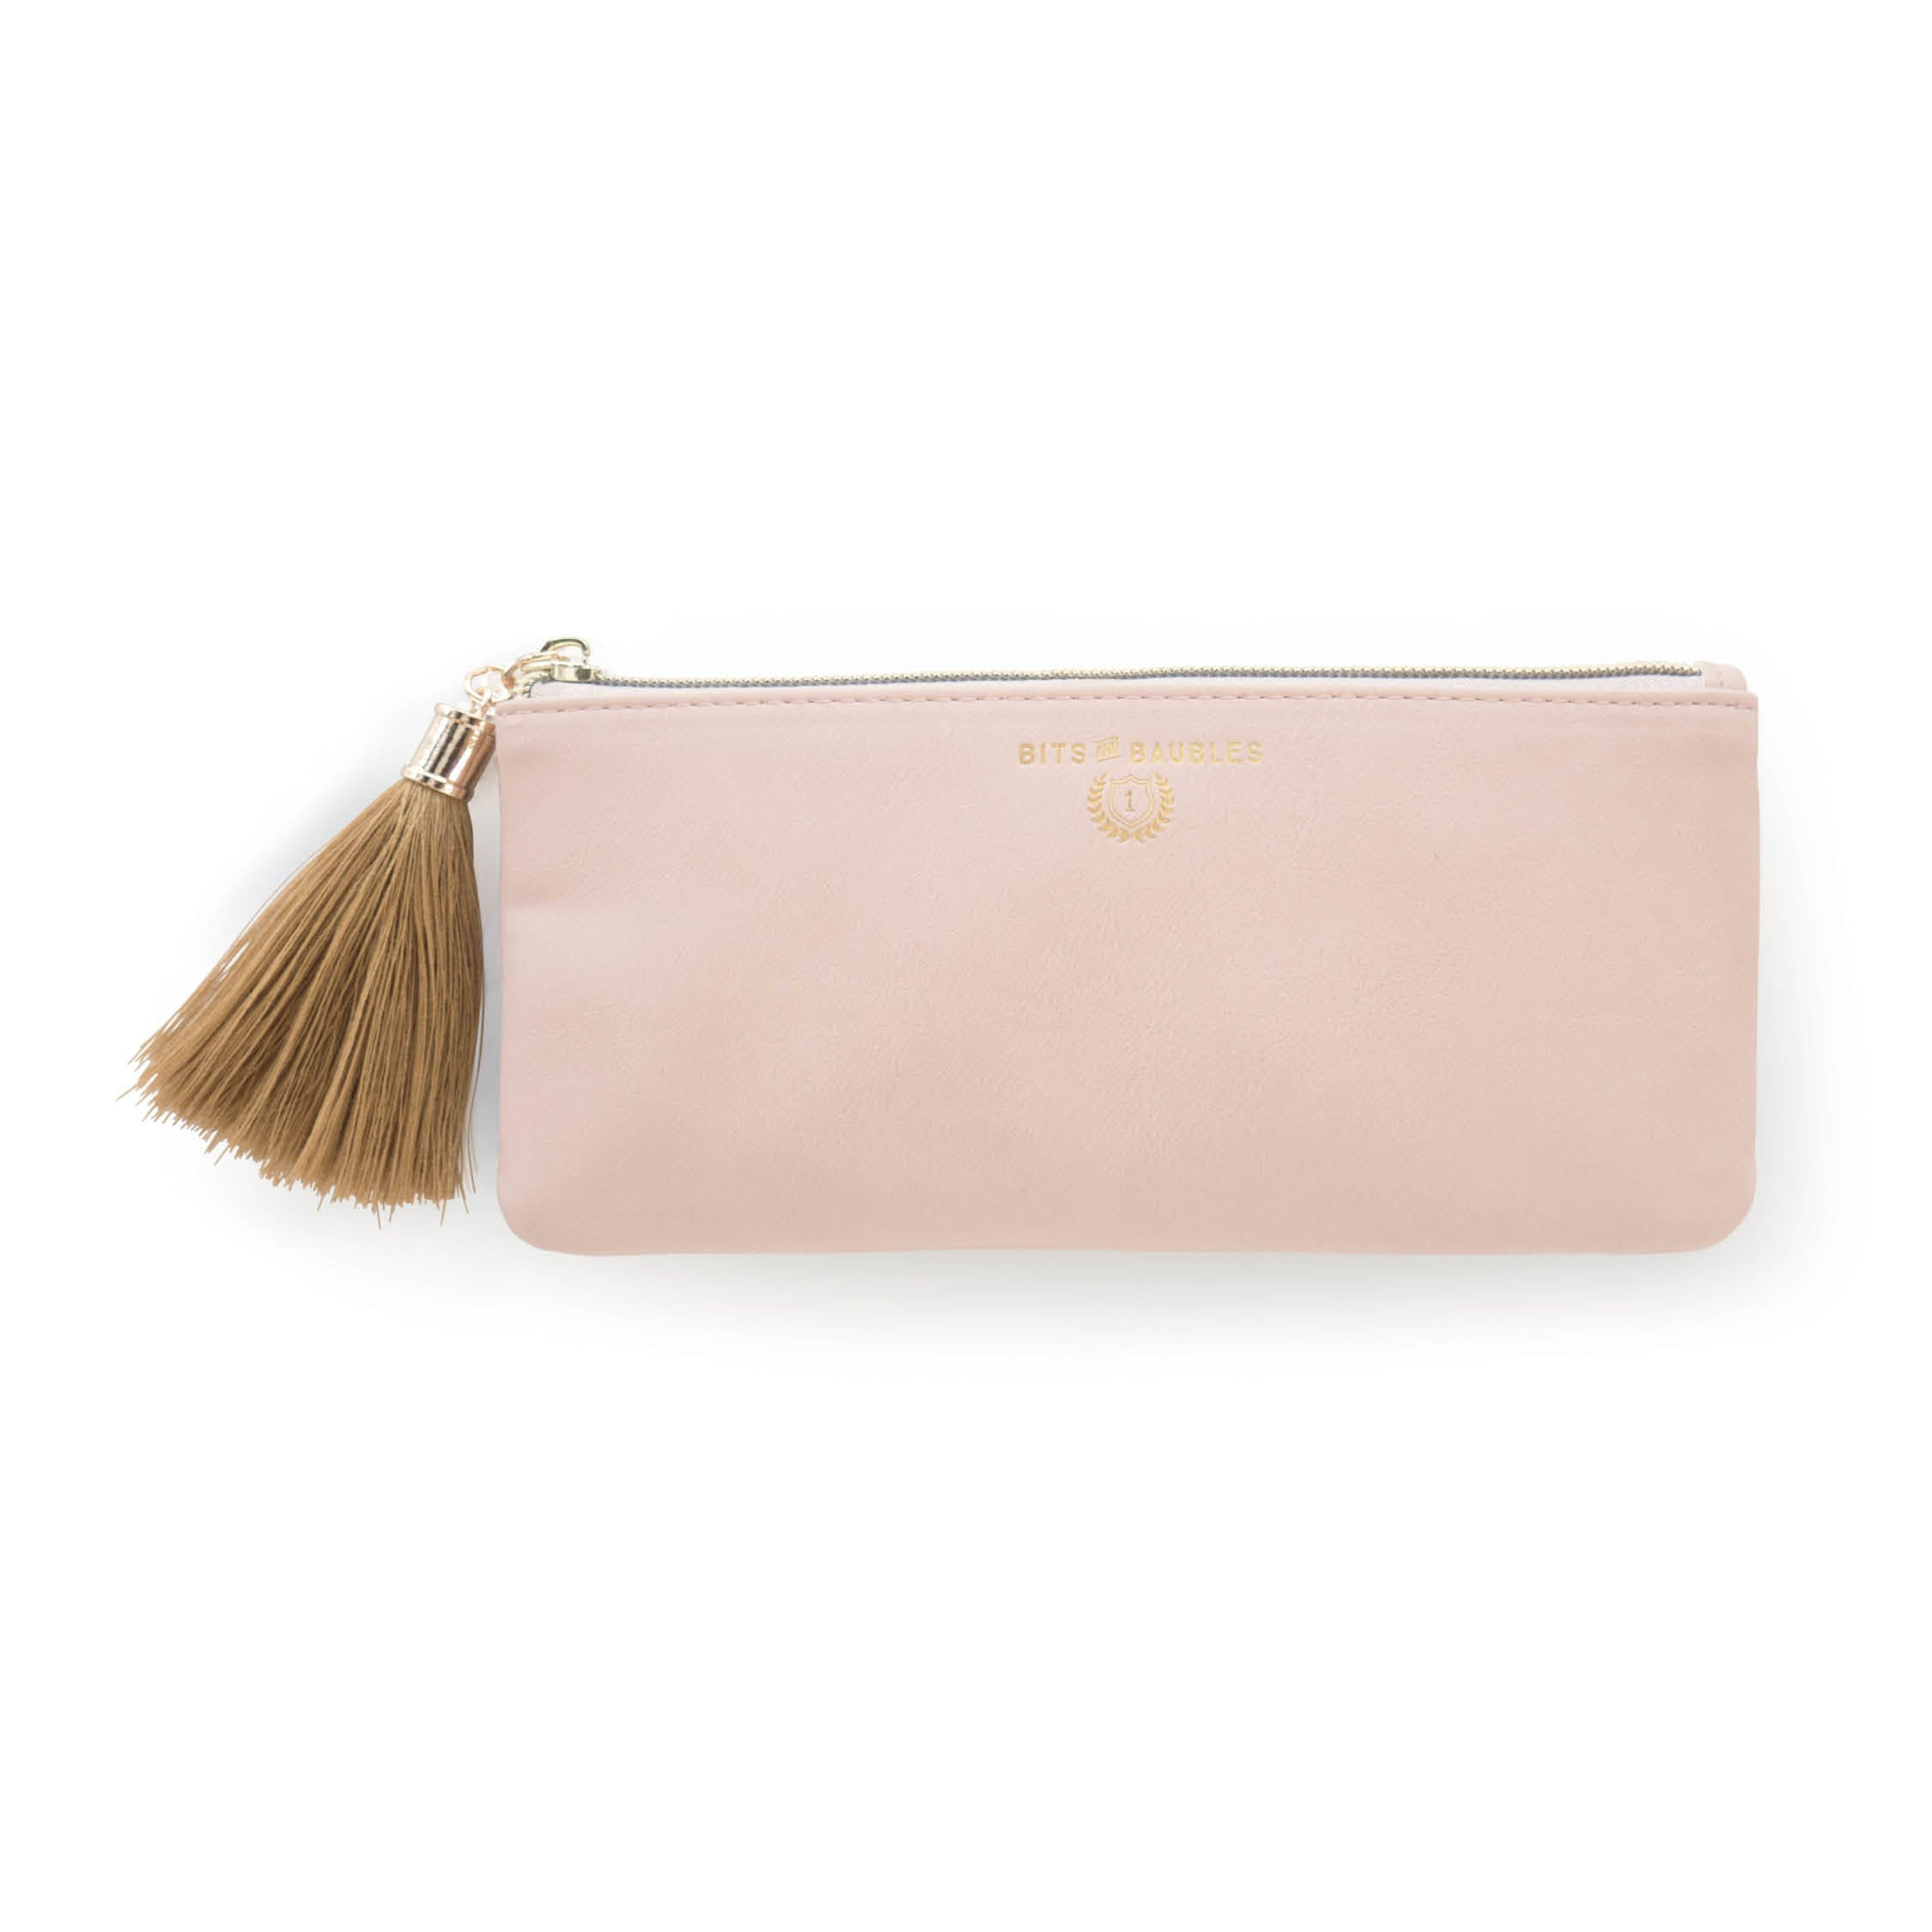 Bits & Baubles Pencil Case in Blush Pink